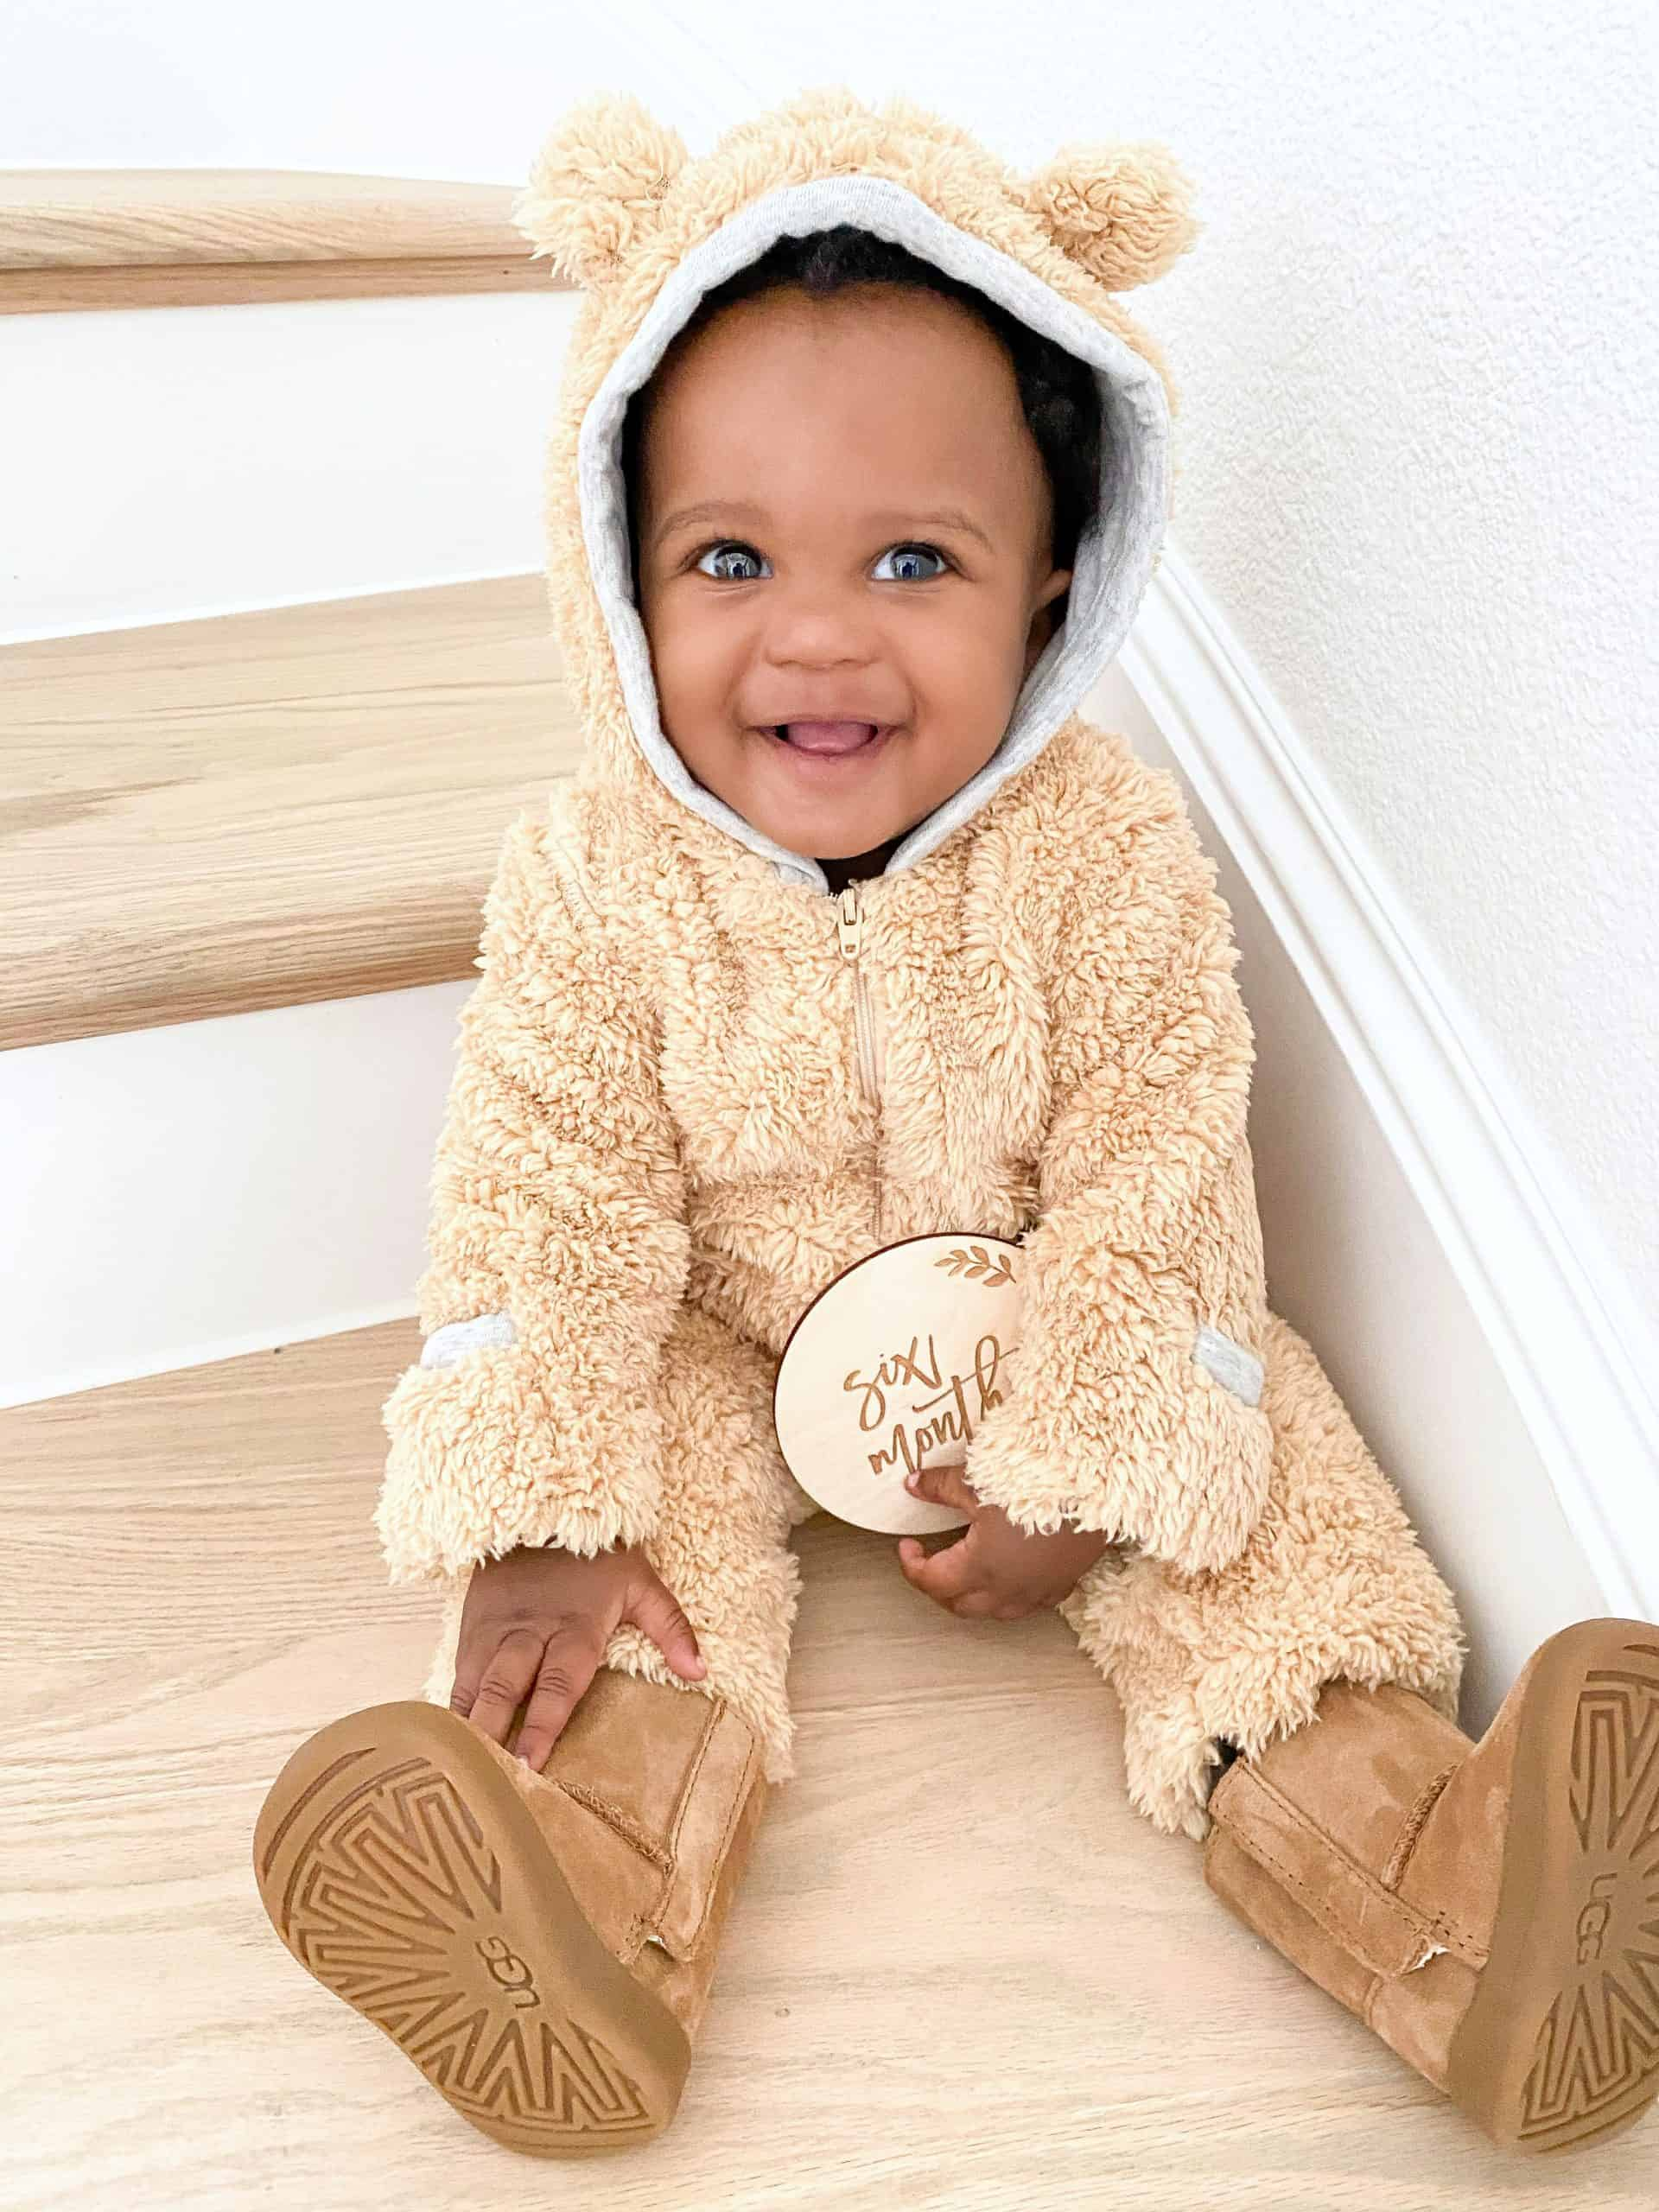 Birth Story by popular Dallas motherhood blog, Glamorous Versatility: image of a baby wearing a bear suite and baby Uggs.